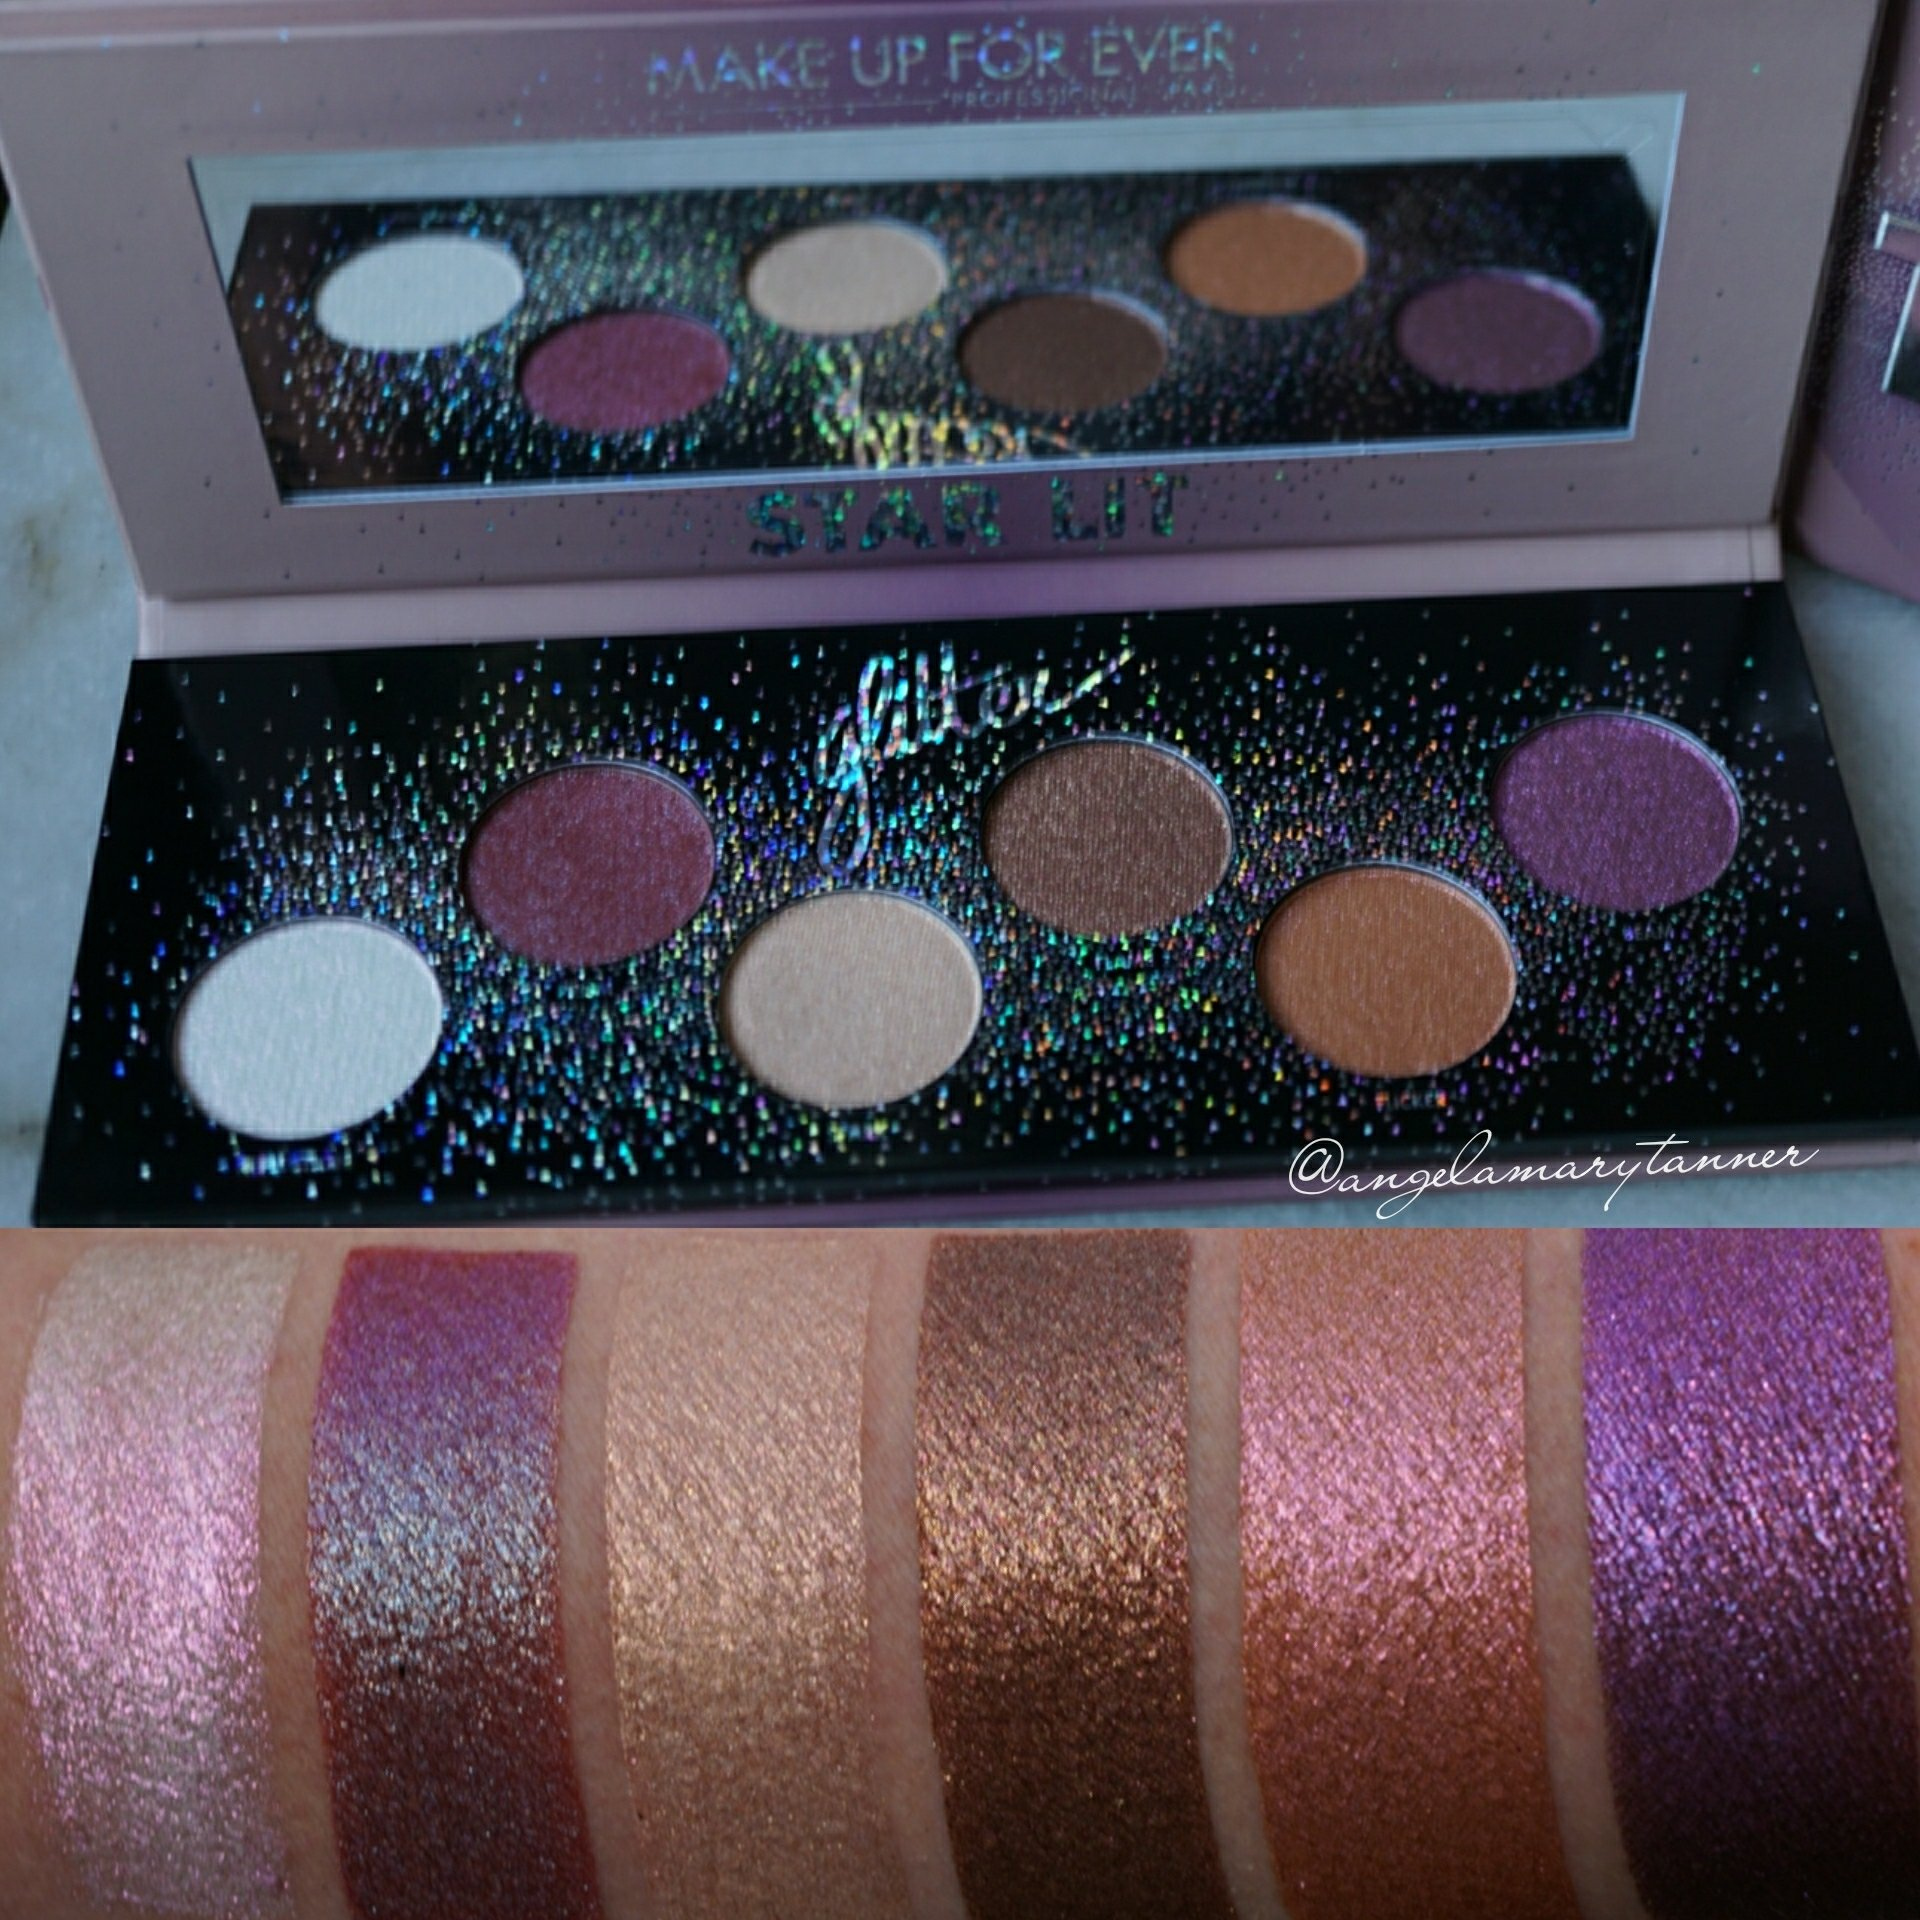 Lit Palette Make Up For Ever Star Lit Palette Review Swatches And Possible